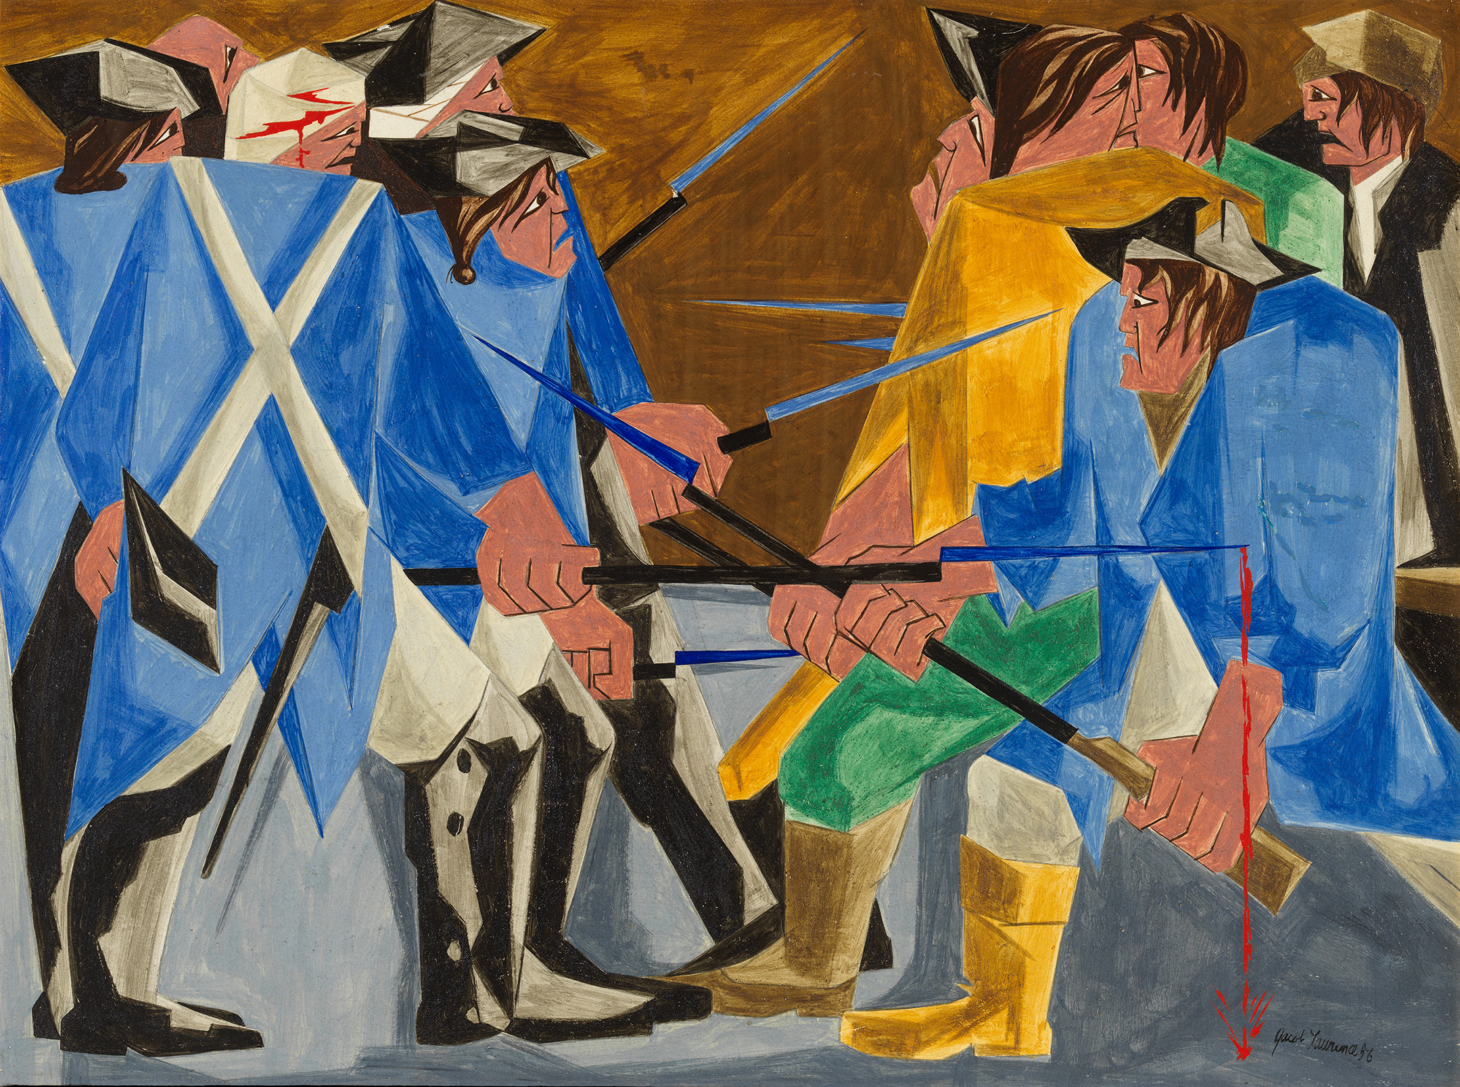 A Jacob Lawrence Painting, Thought Missing for Decades, Was in a NYC Apartment All Along